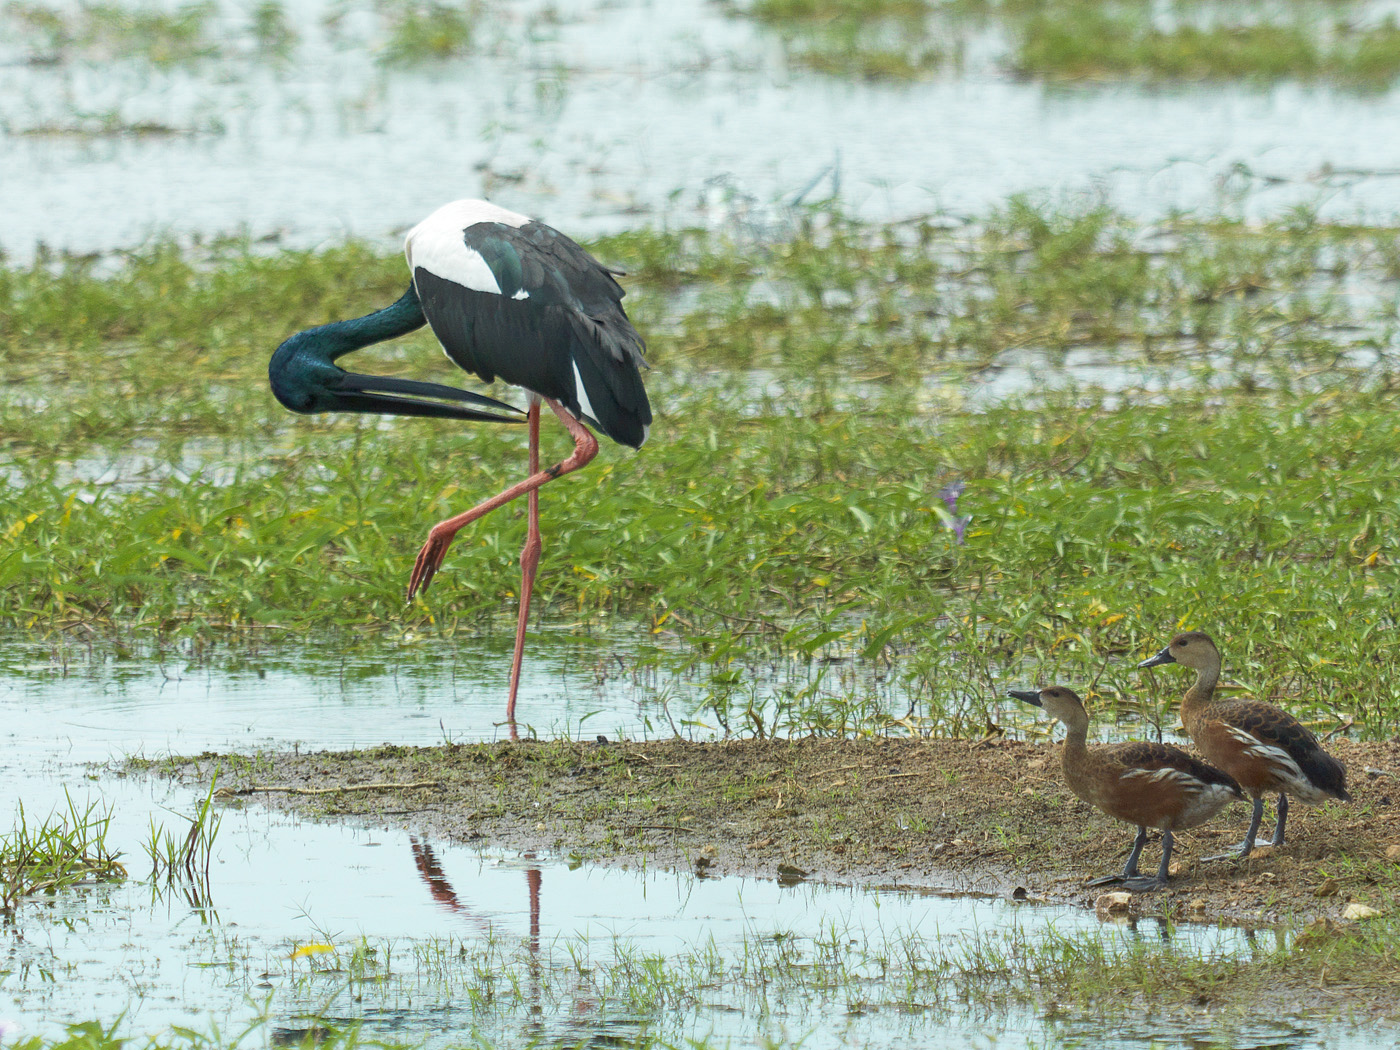 Black-necked Stork, Wandering Whistling-Duck